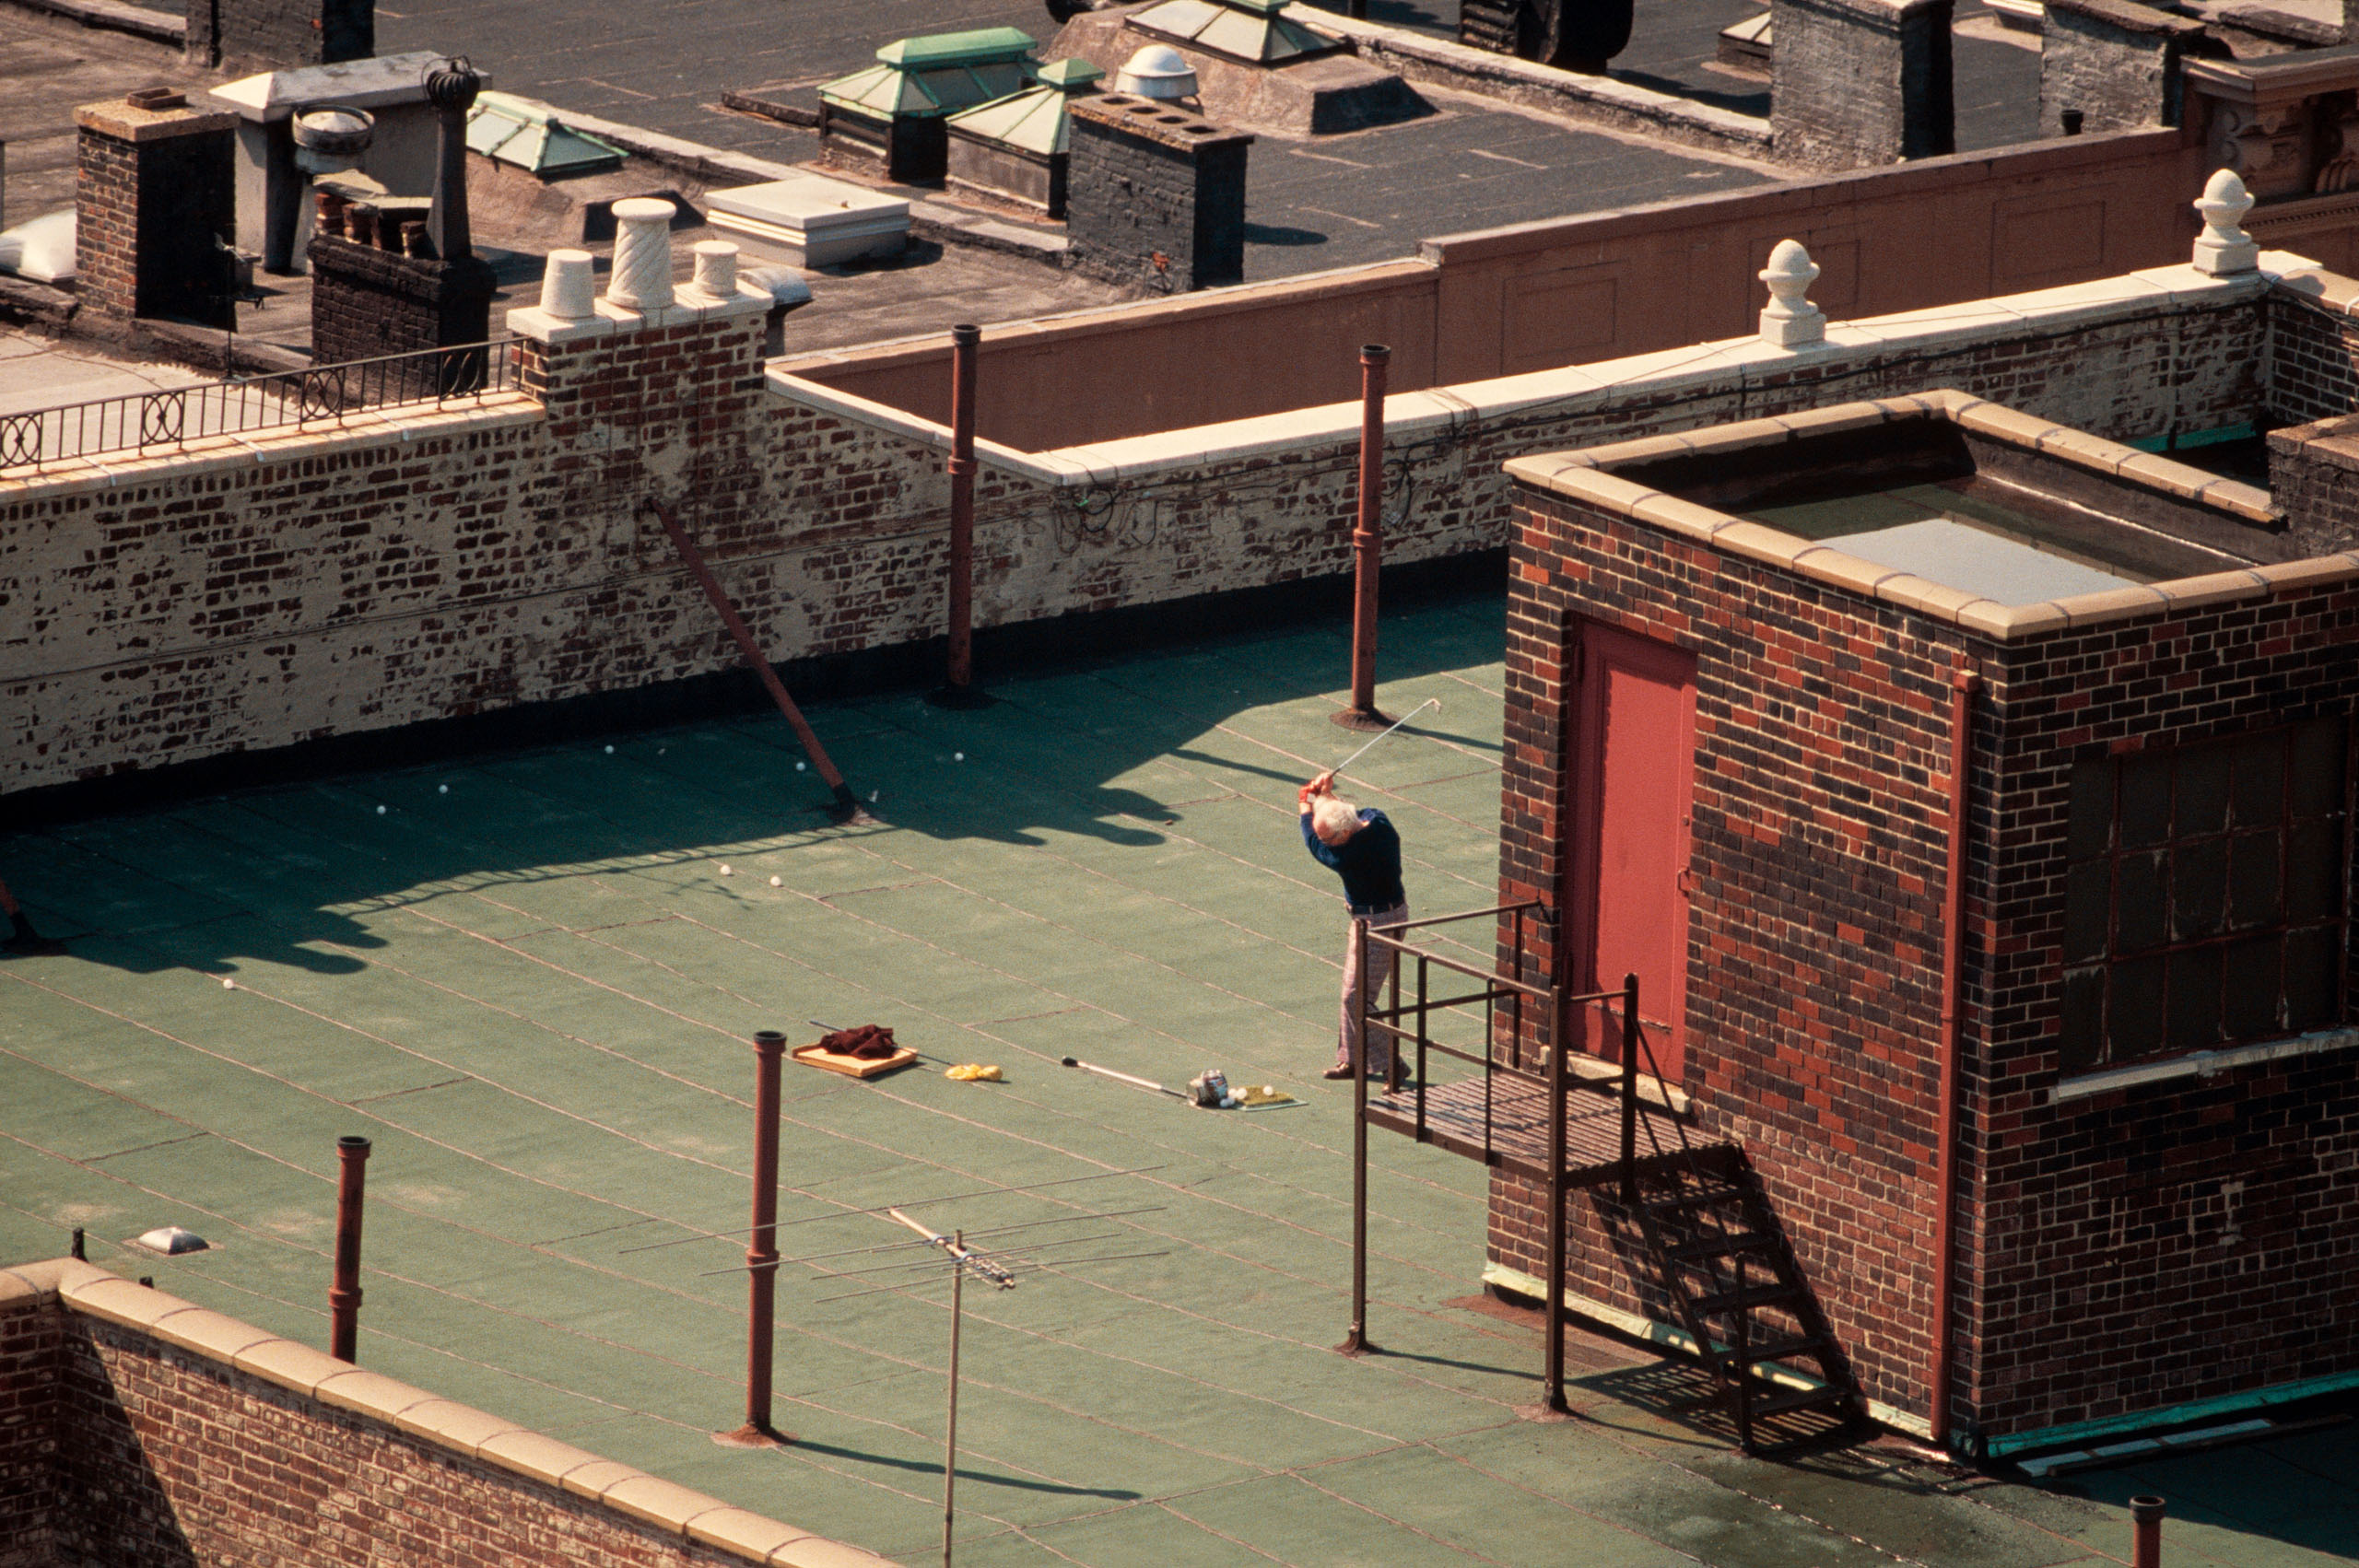 Getting The Best Out Of A Midtown Manhattan Rooftop During A Sunny Day In 1983. Photo by Thomas Hoepker.